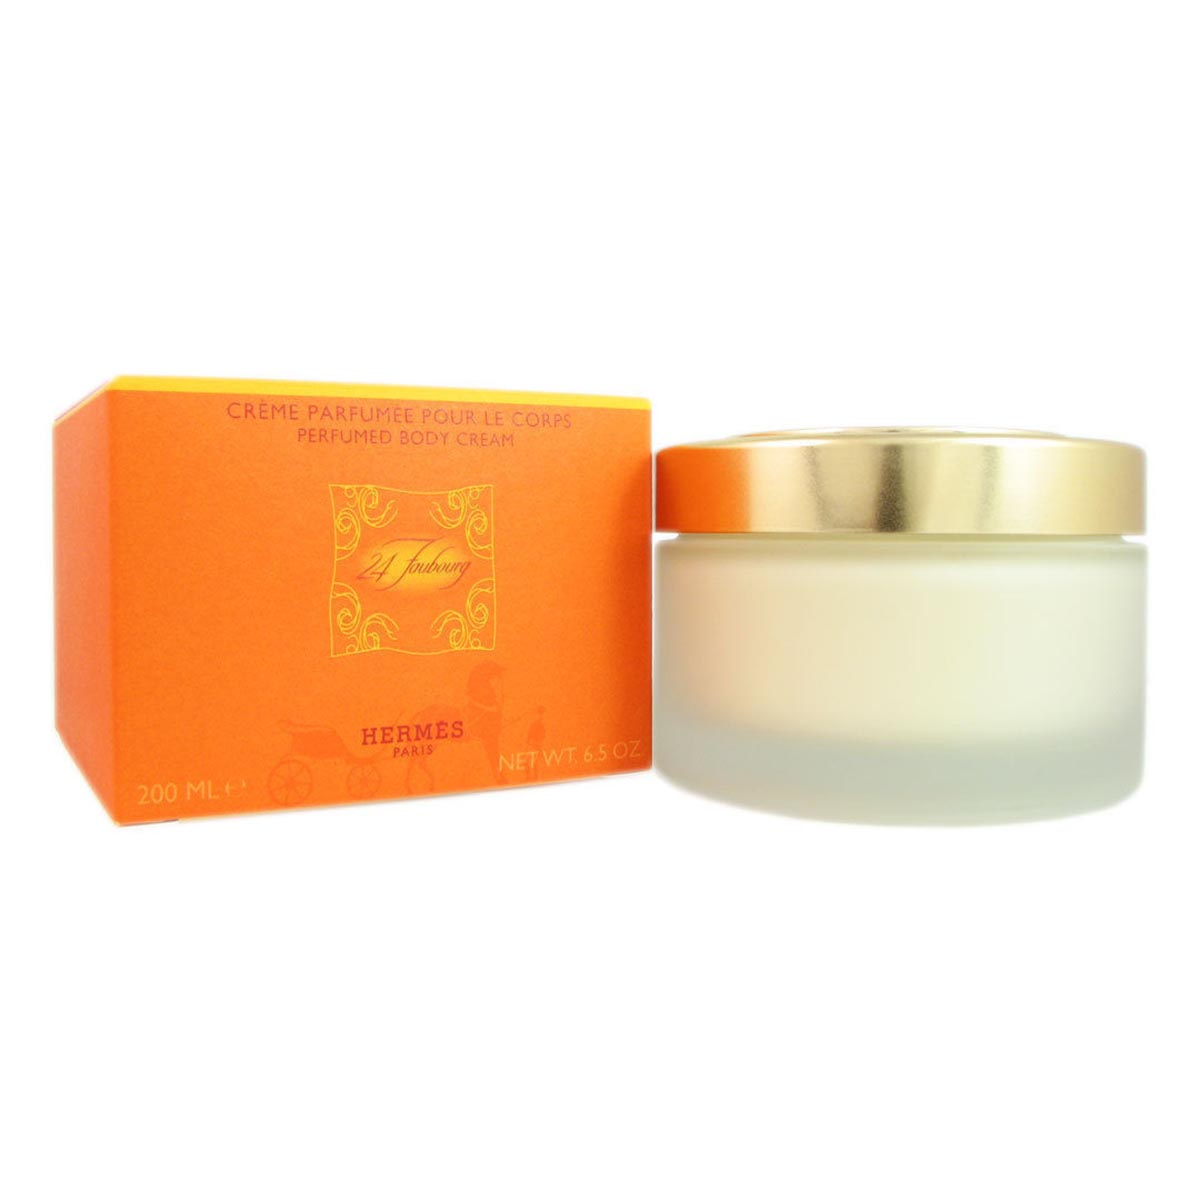 Hermes 24 faubourg perfumed body cream 200ml